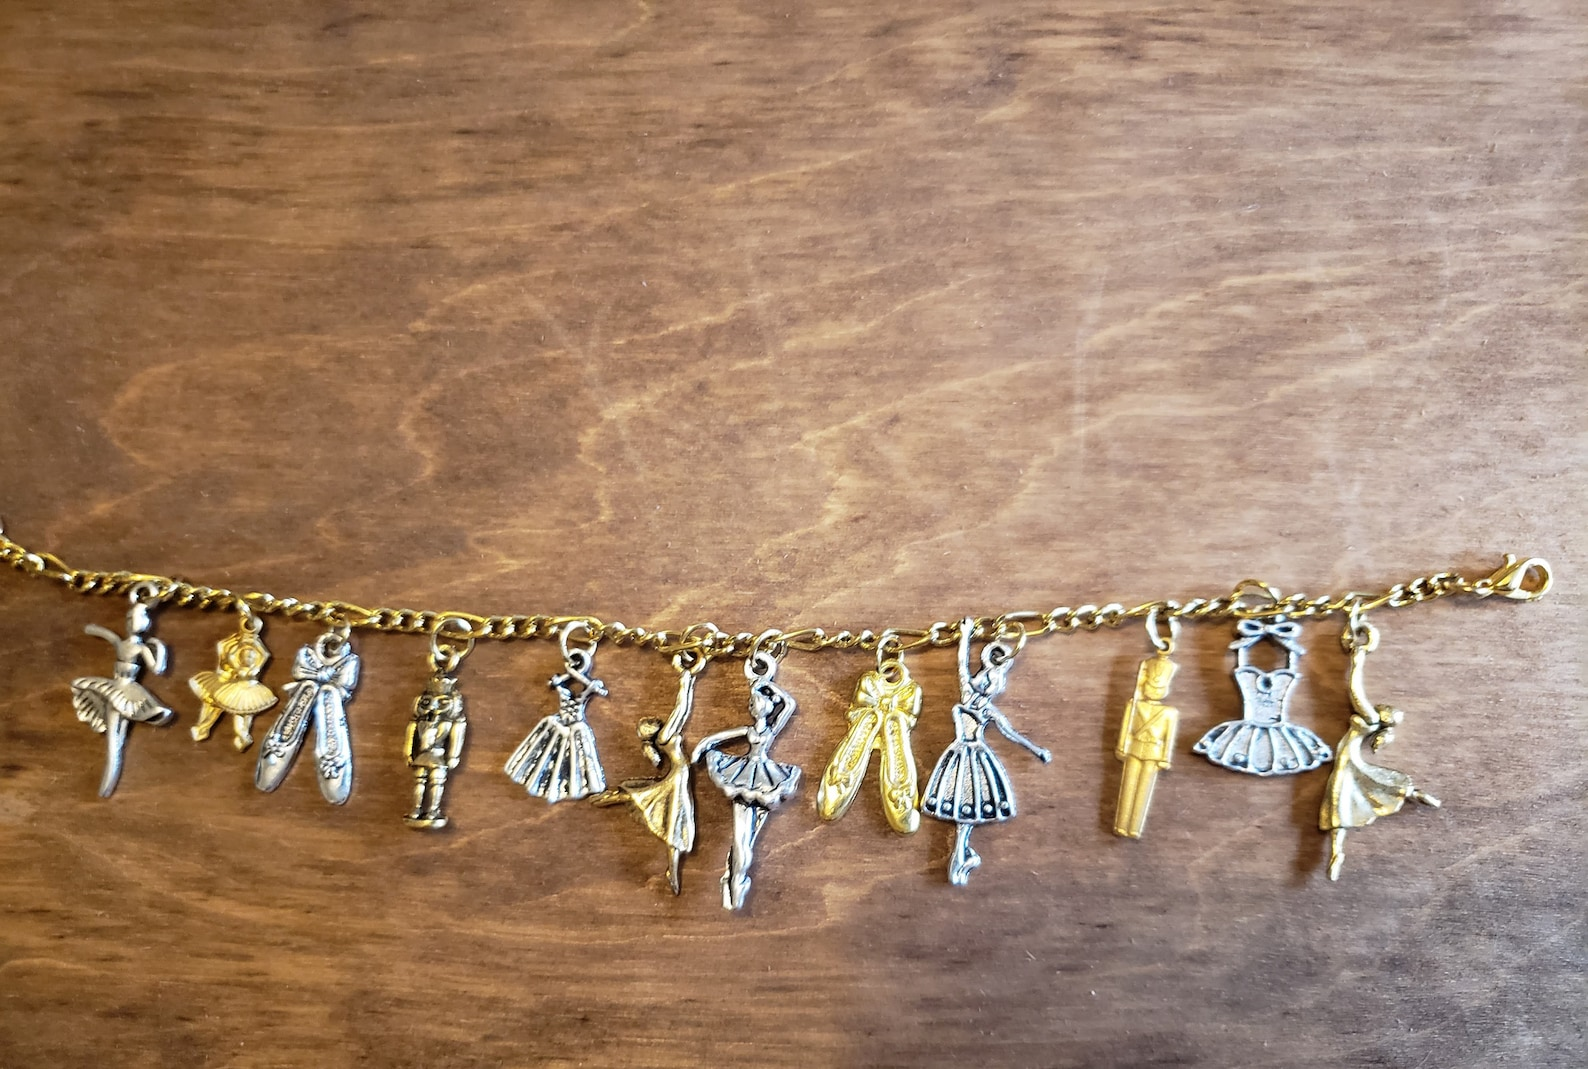 ballet bracelet with nutcracker victorian, vintage, recycled, up-cycled fashion jewelry in gold/silver tones on figaro chain w/1